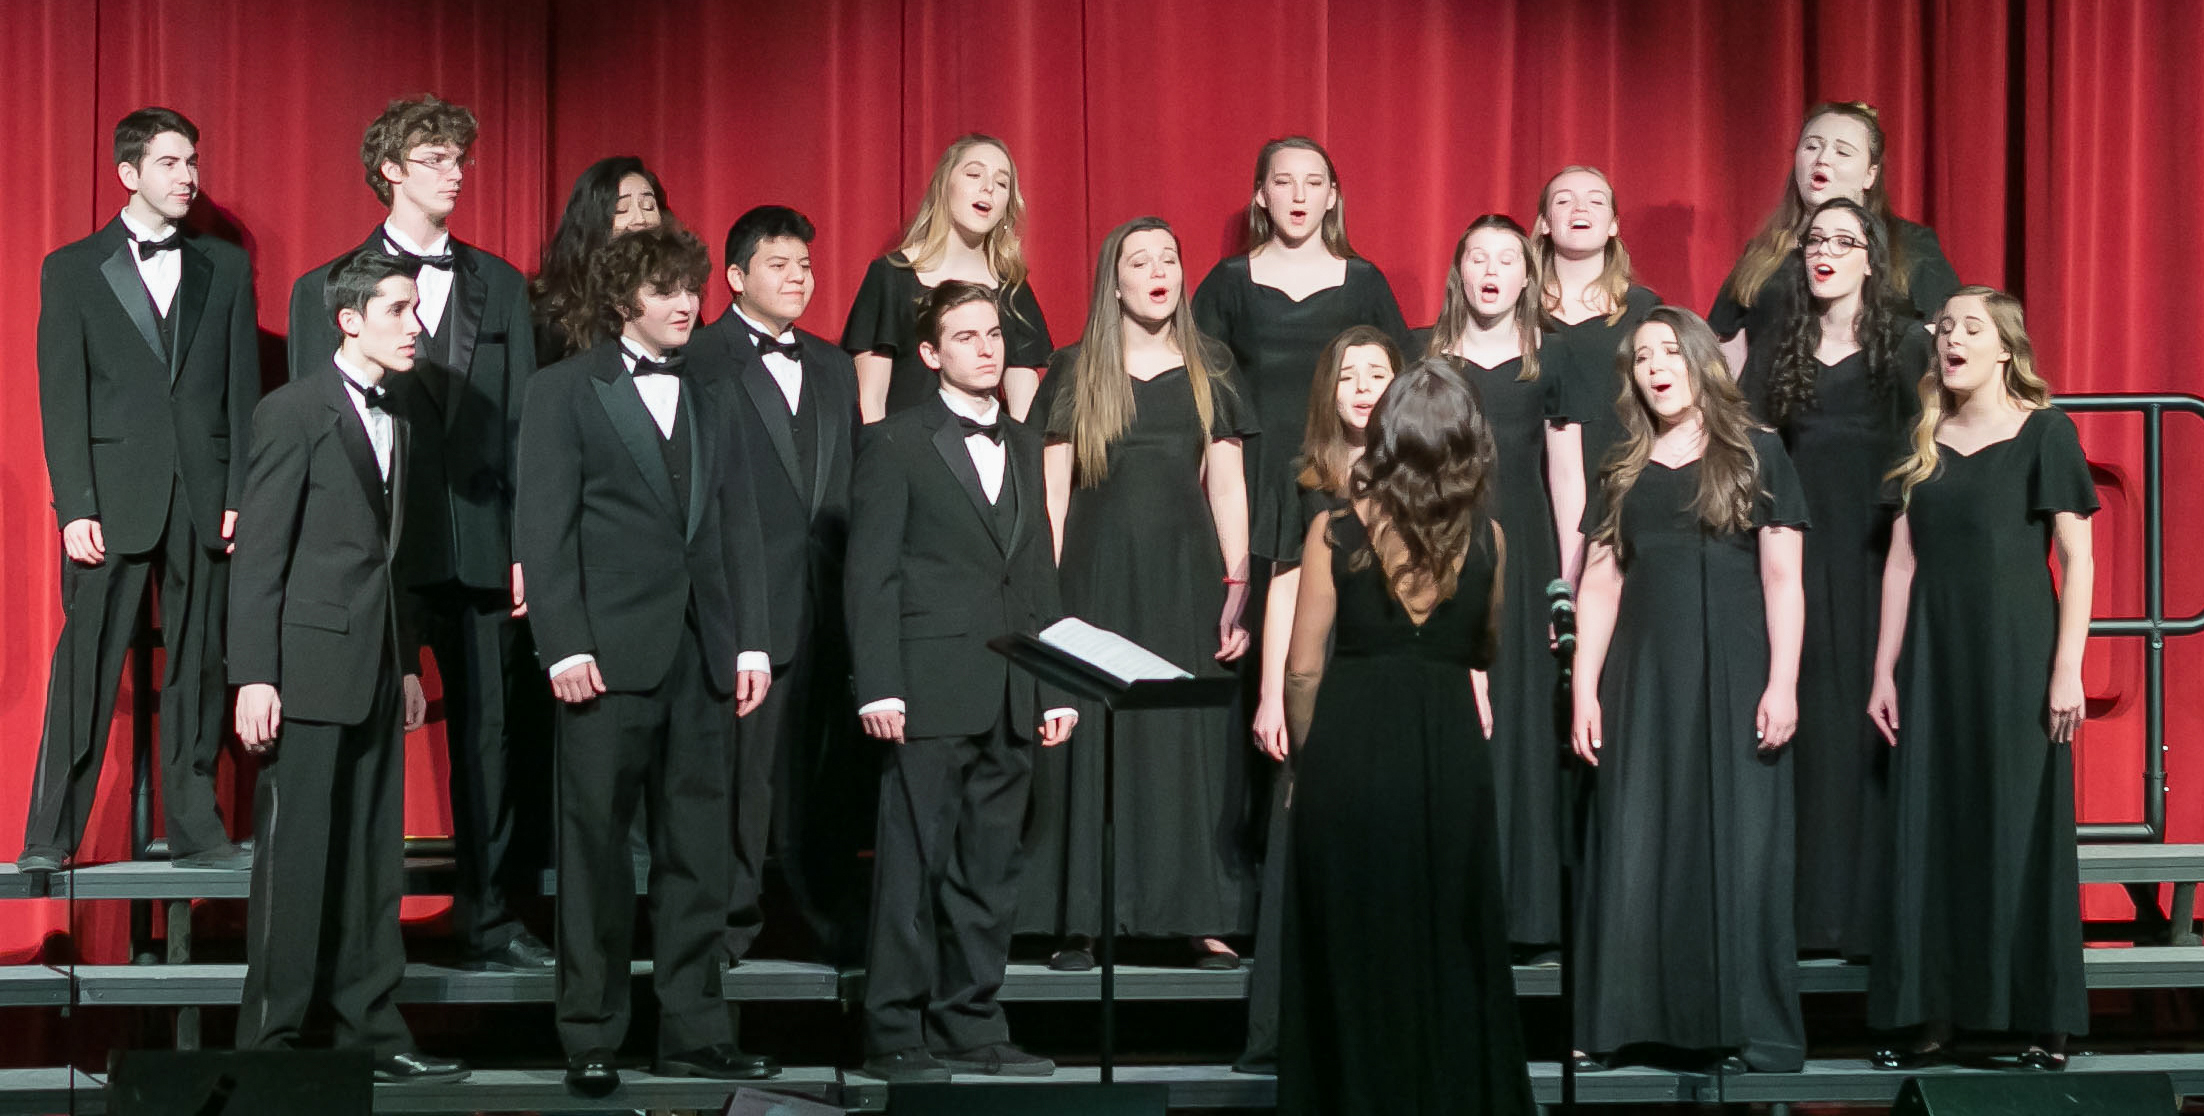 Multiple choirs to perform in concert Feb  28 - General News - News